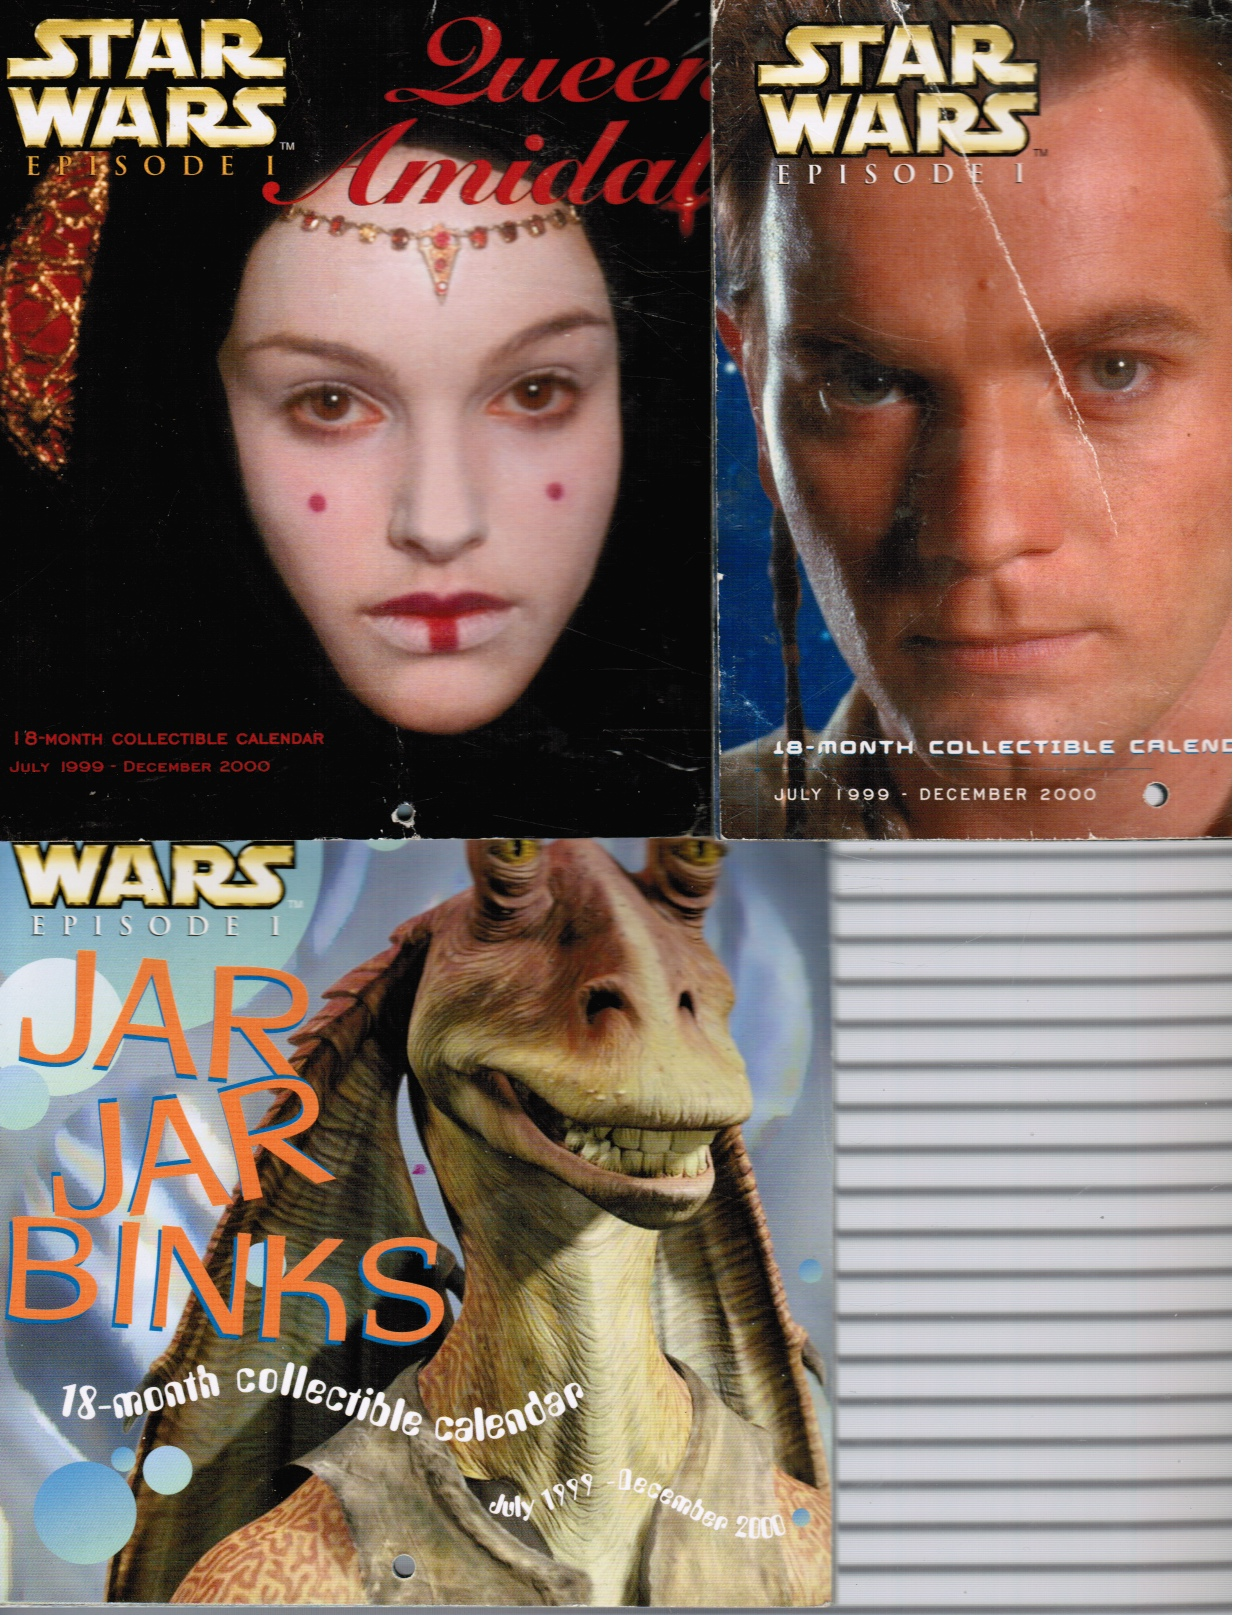 Image for Star Wars Episode I: Set of 3 Calendars : Queen Amidala; Obi-Wan Kenobi and Jar Jar Binks